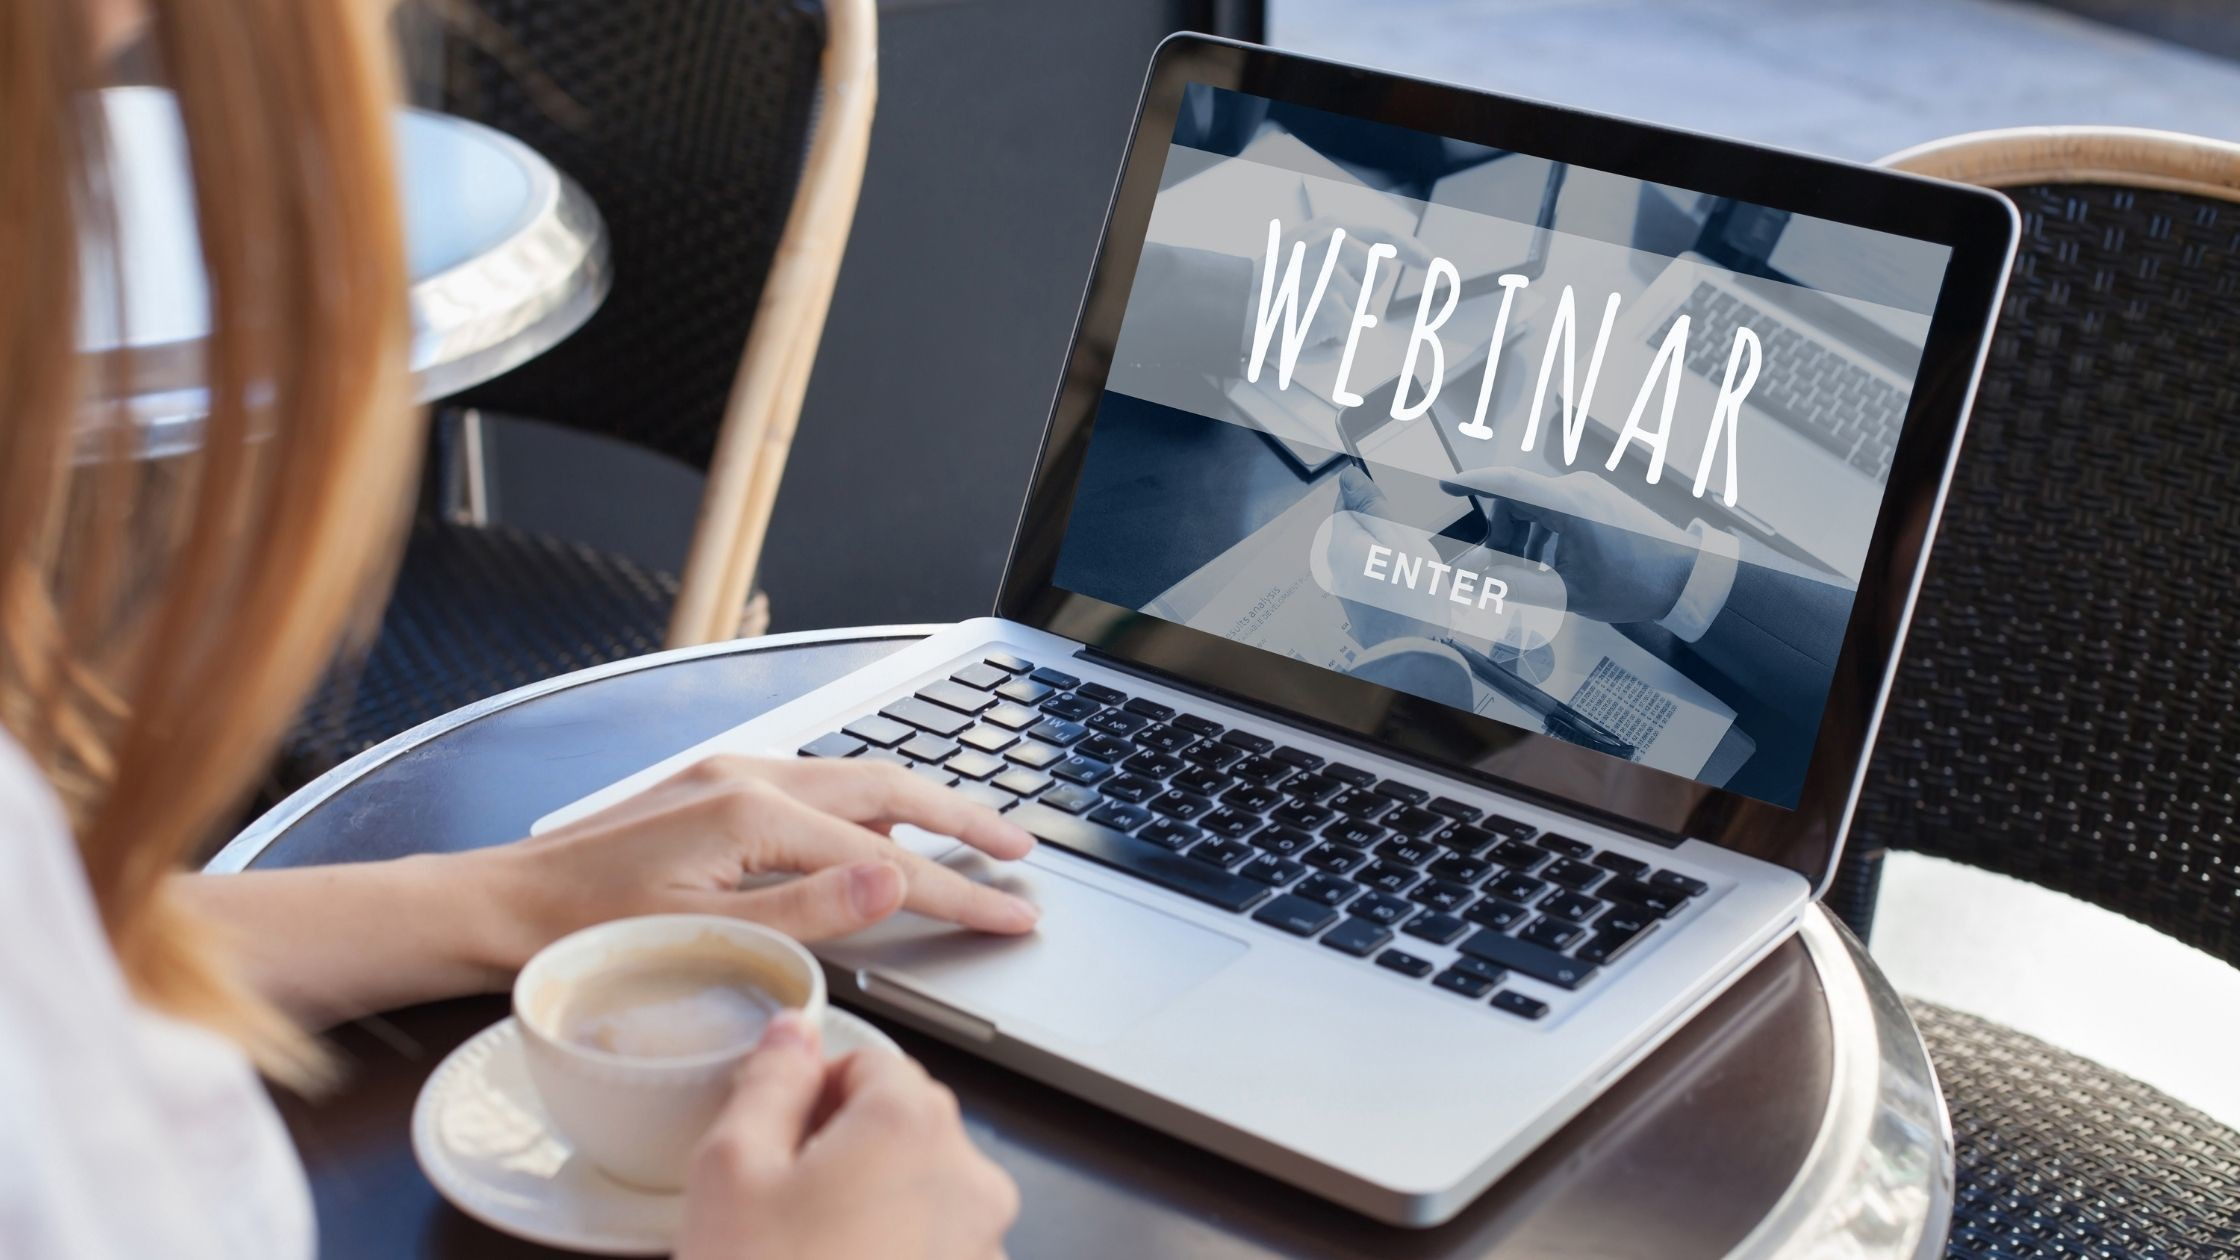 Connect With Our Webinars